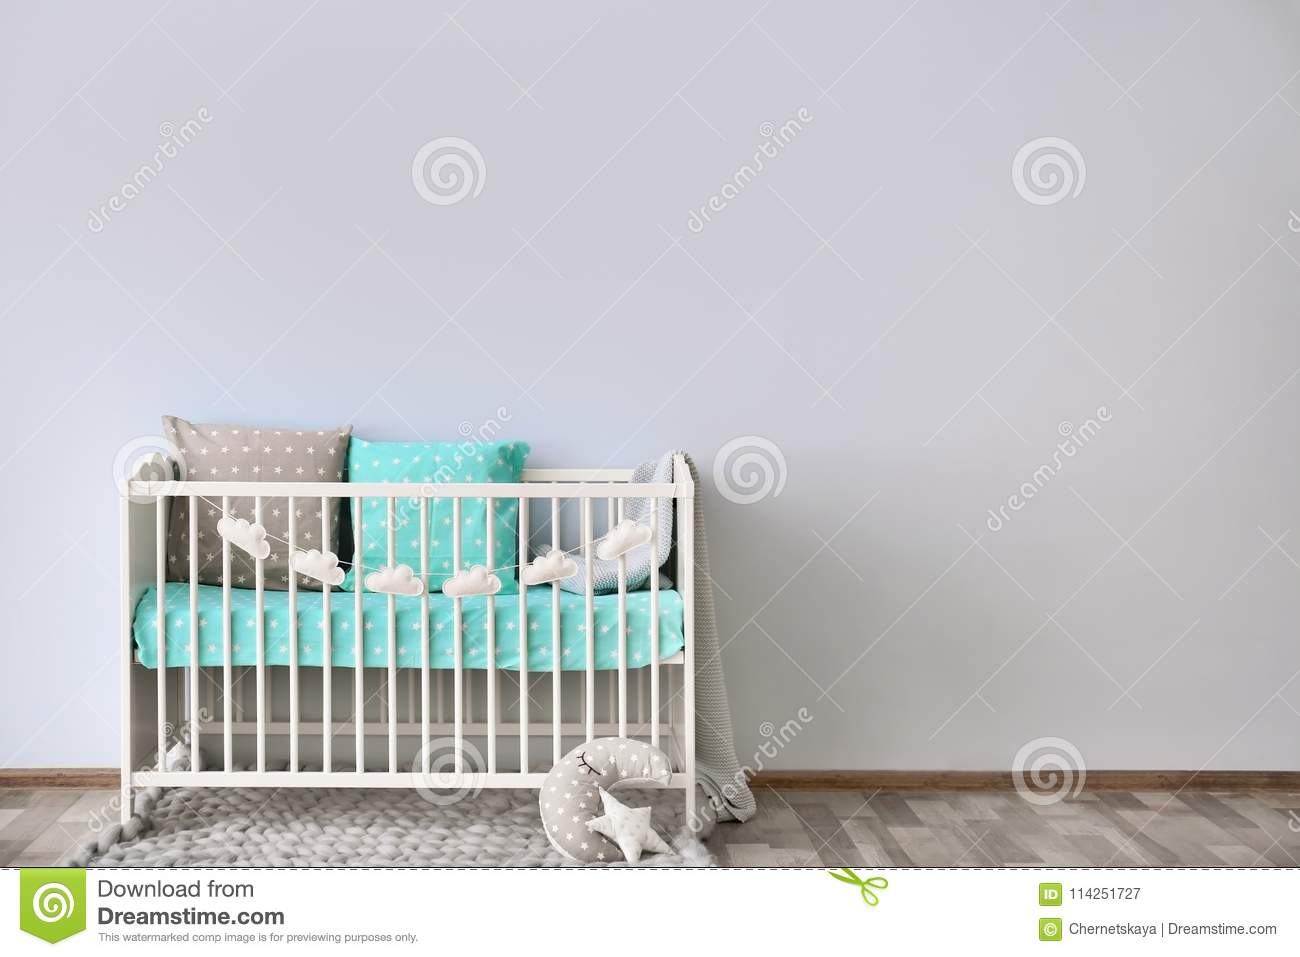 Baby room interior with crib wall